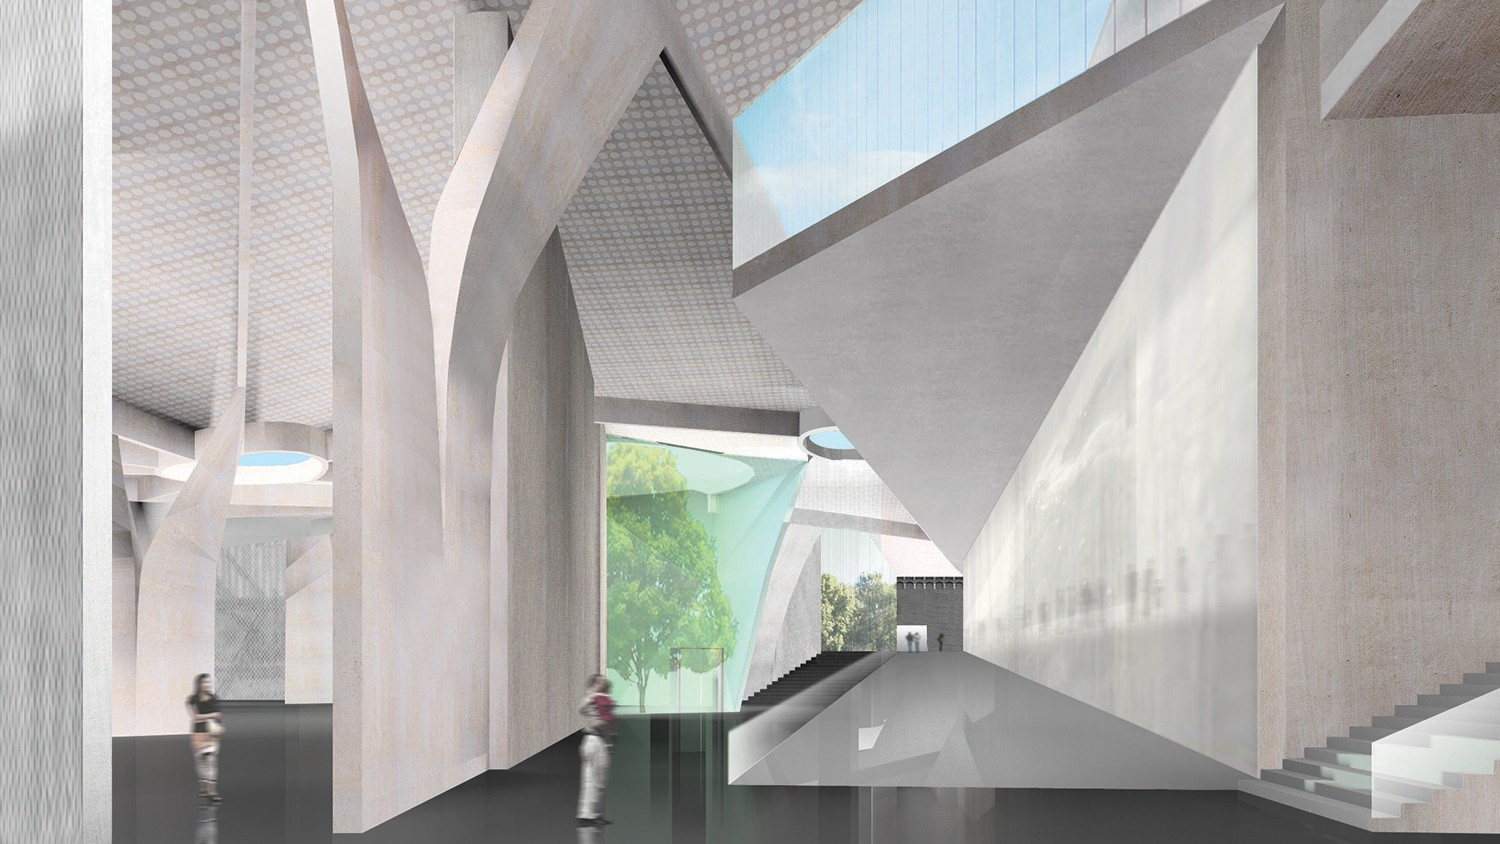 https://s3.us-east-2.amazonaws.com/steven-holl/uploads/projects/project-images/StevenHollArchitects_LANH_interior4_WH.jpg